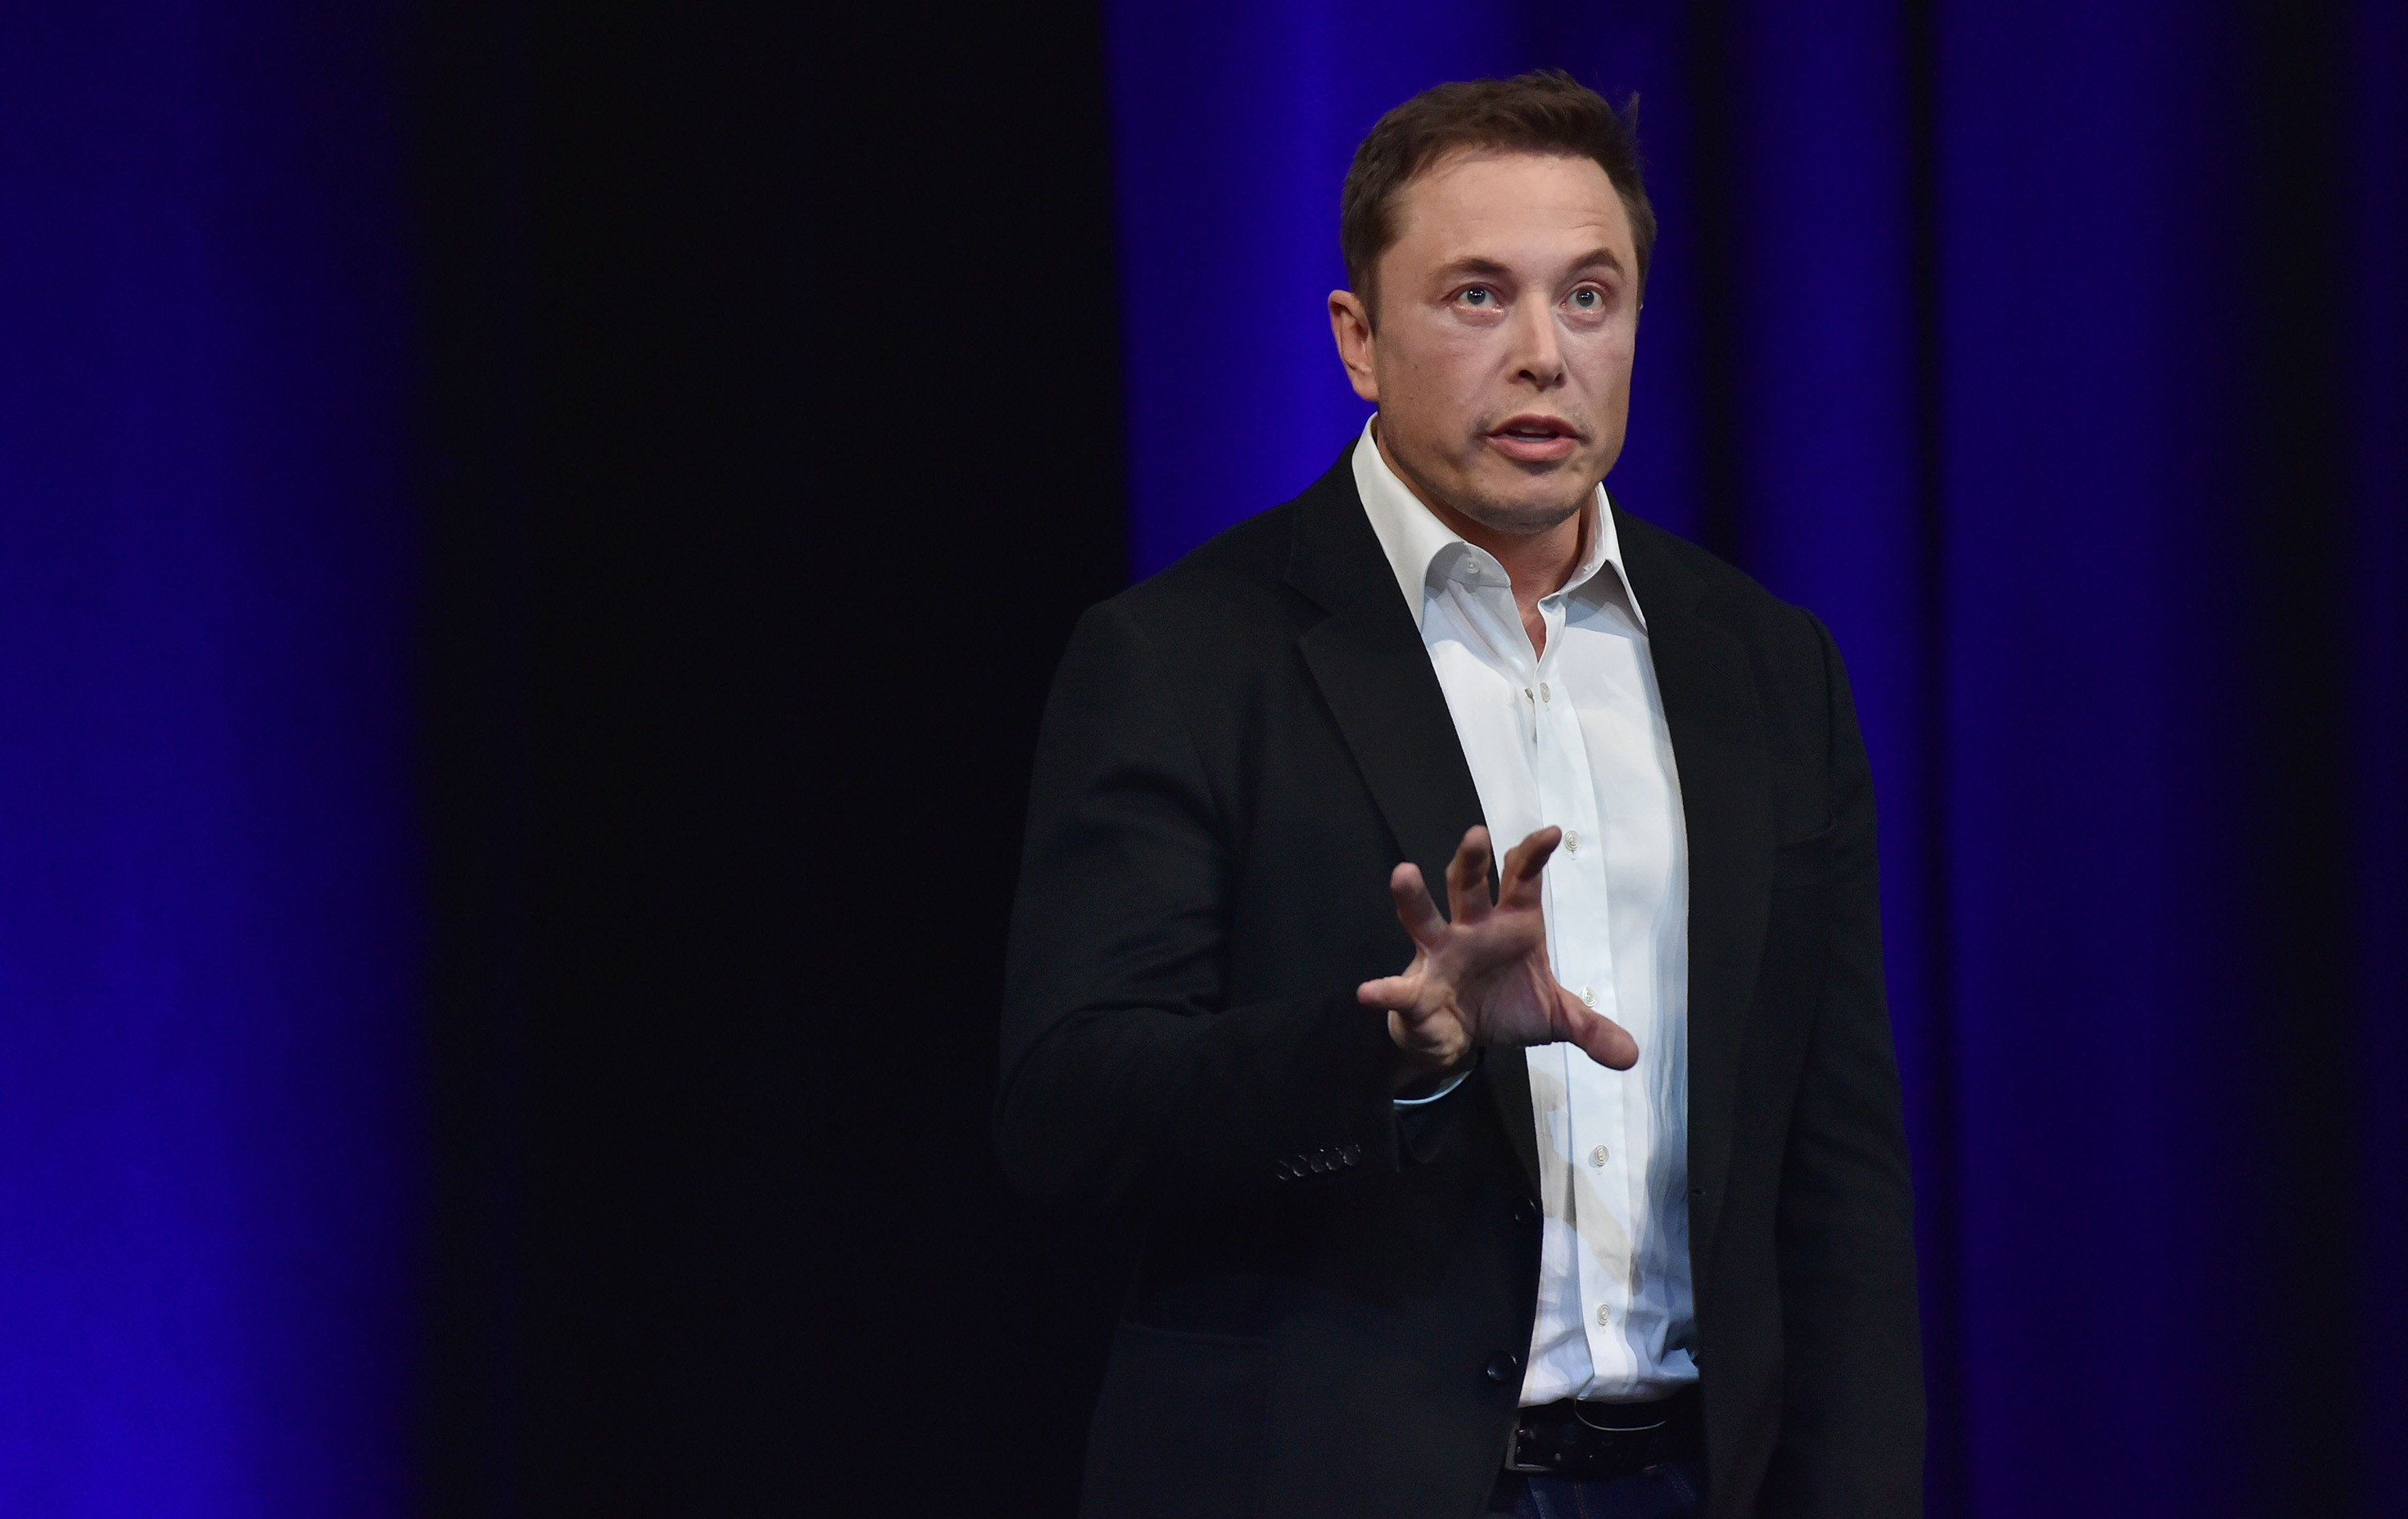 Elon Musk's Mars ambition is the future vision we truly desire